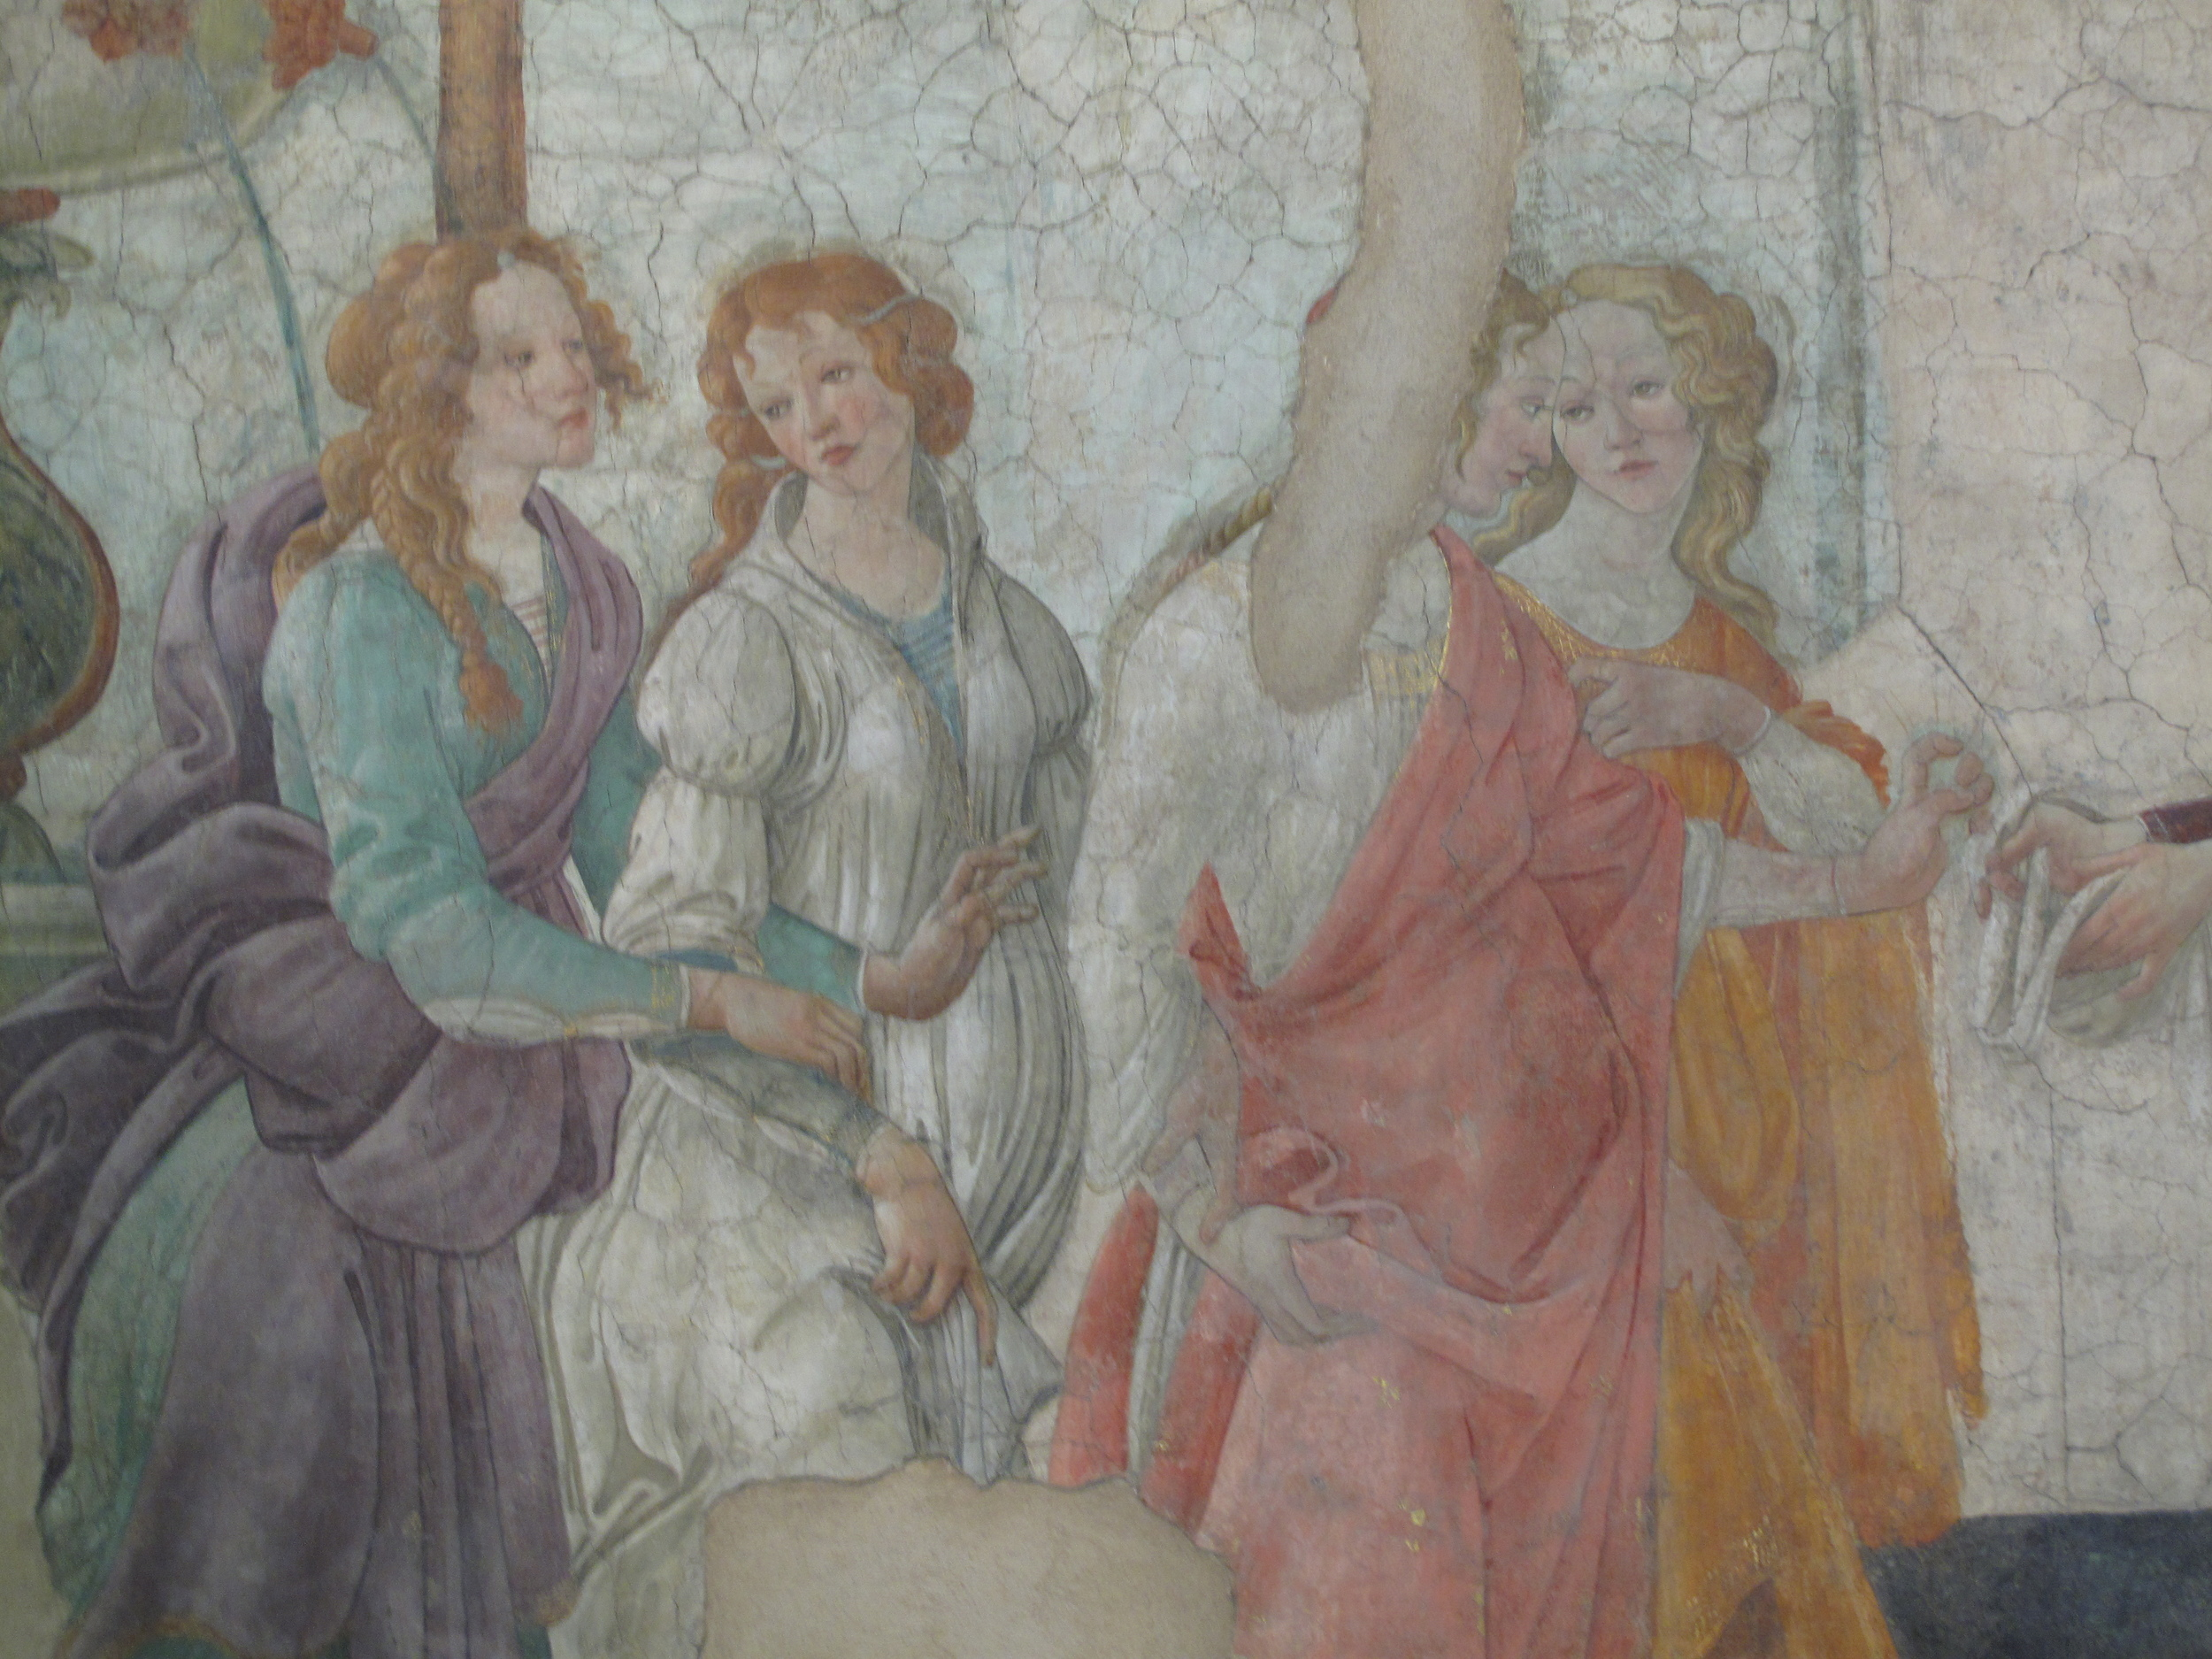 A photo of Botticelli's Venus and Three Graces